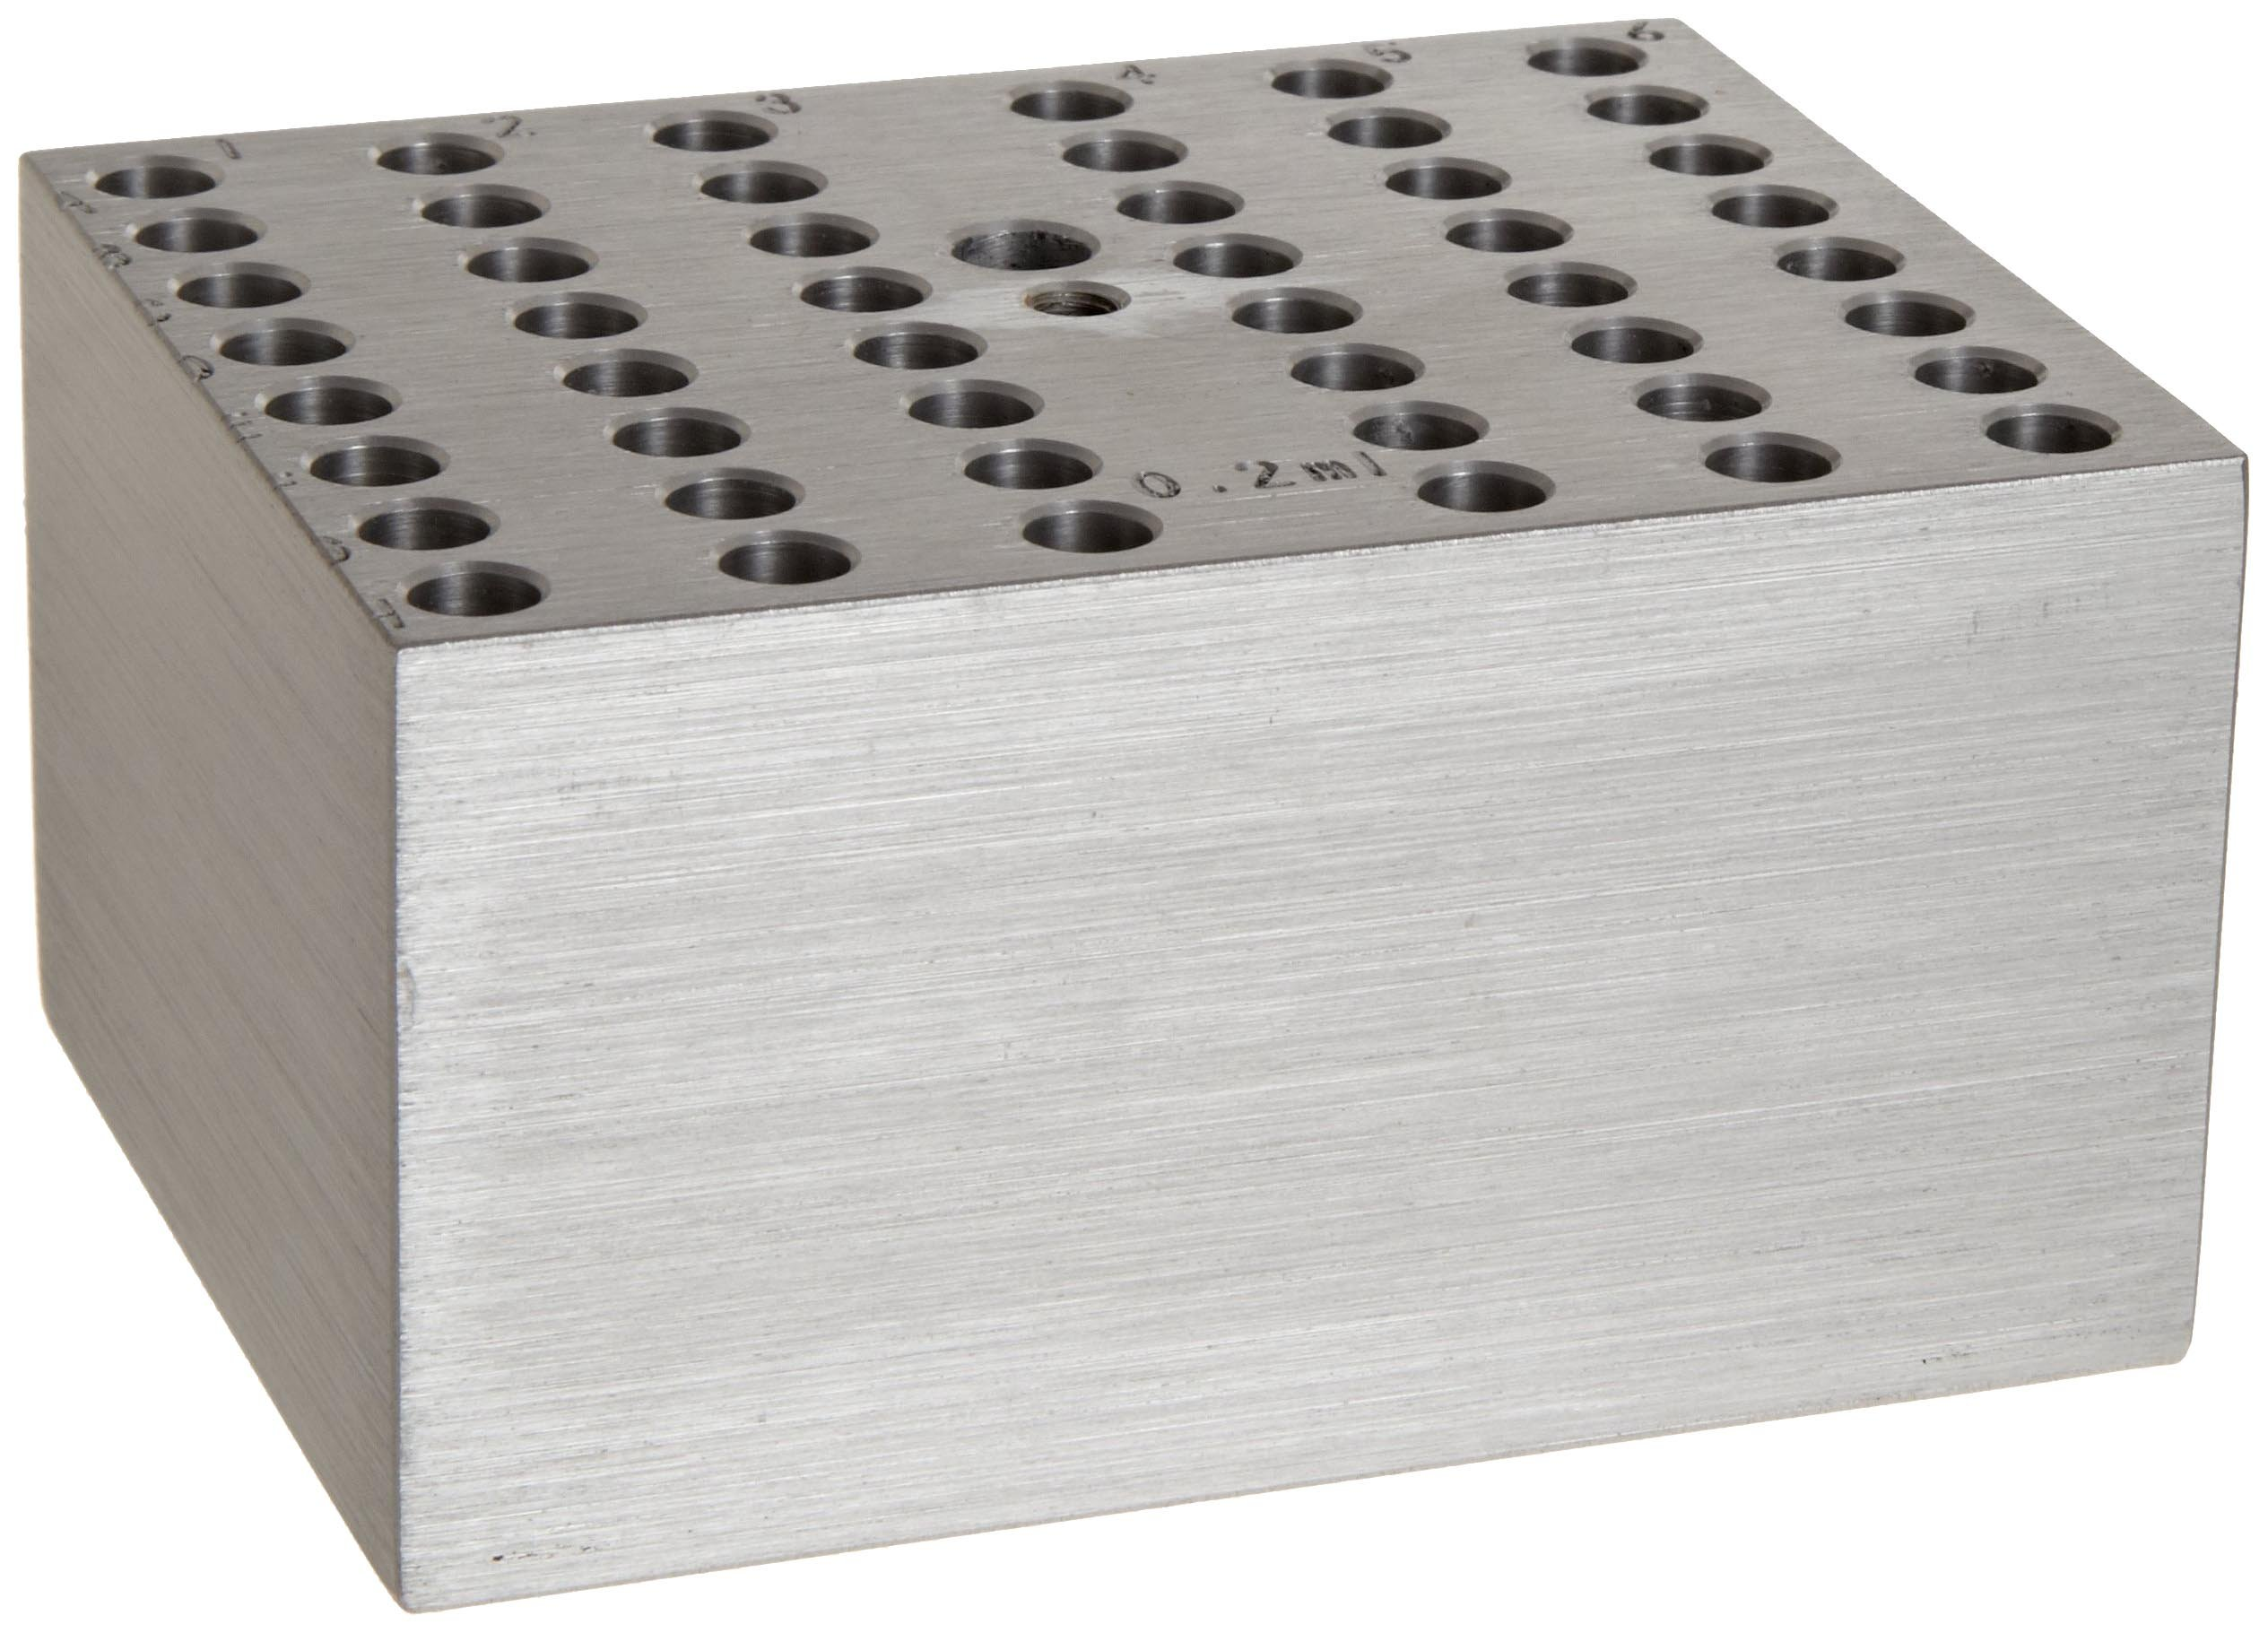 Benchmark Scientific BSW02 Aluminum Dry Bath Heating Block for Digital Dry Bath Incubator, 48 x 0.2mL Tubes or 6 PCR Strips of 8 Tubes Each Capacity by Benchmark Scientific